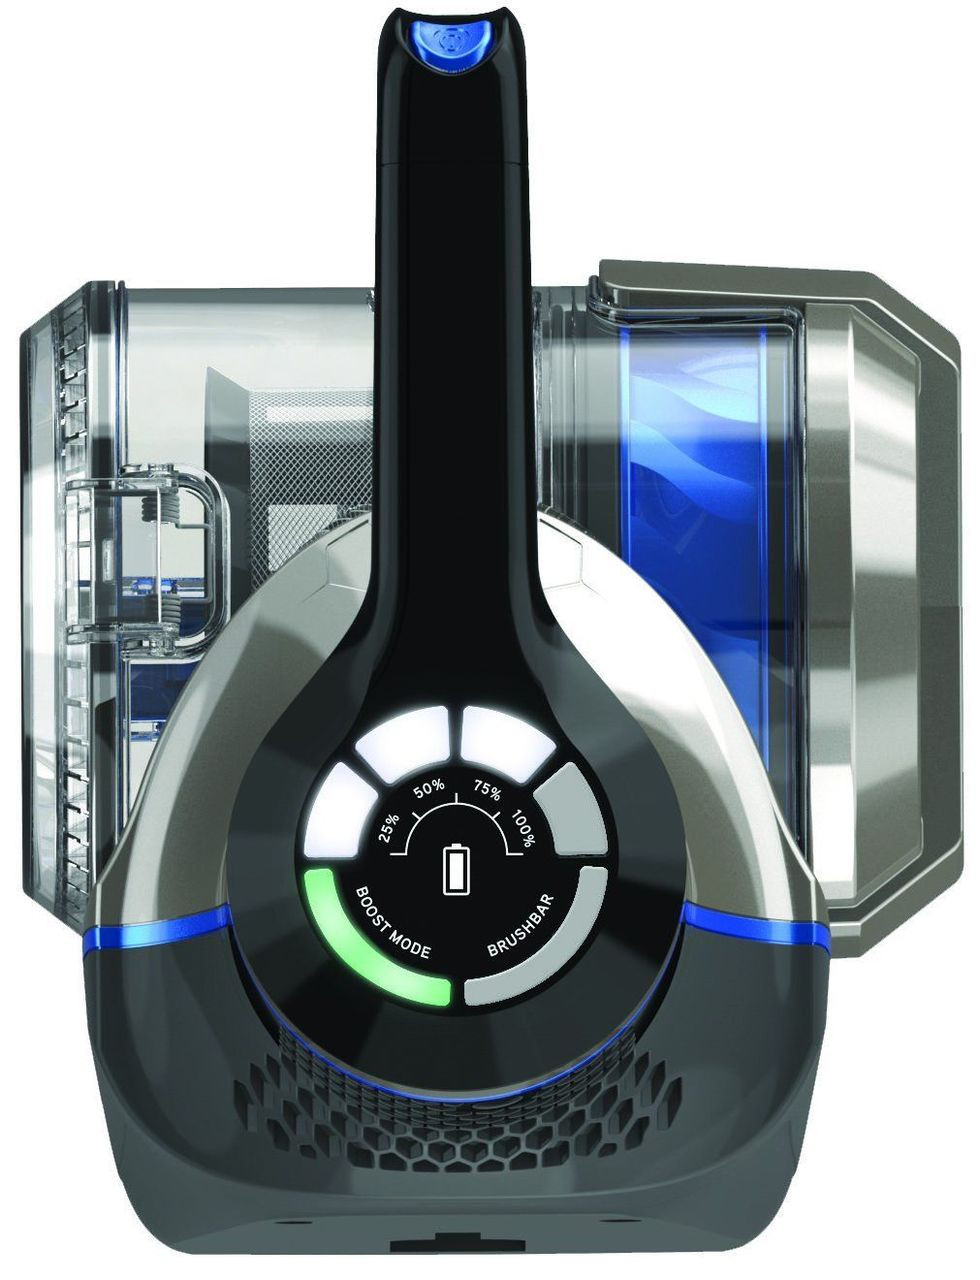 Vax VX63 Blade Pet Pro Cordless Handstick Vacuum Cleaner with 45 Minute Runtime